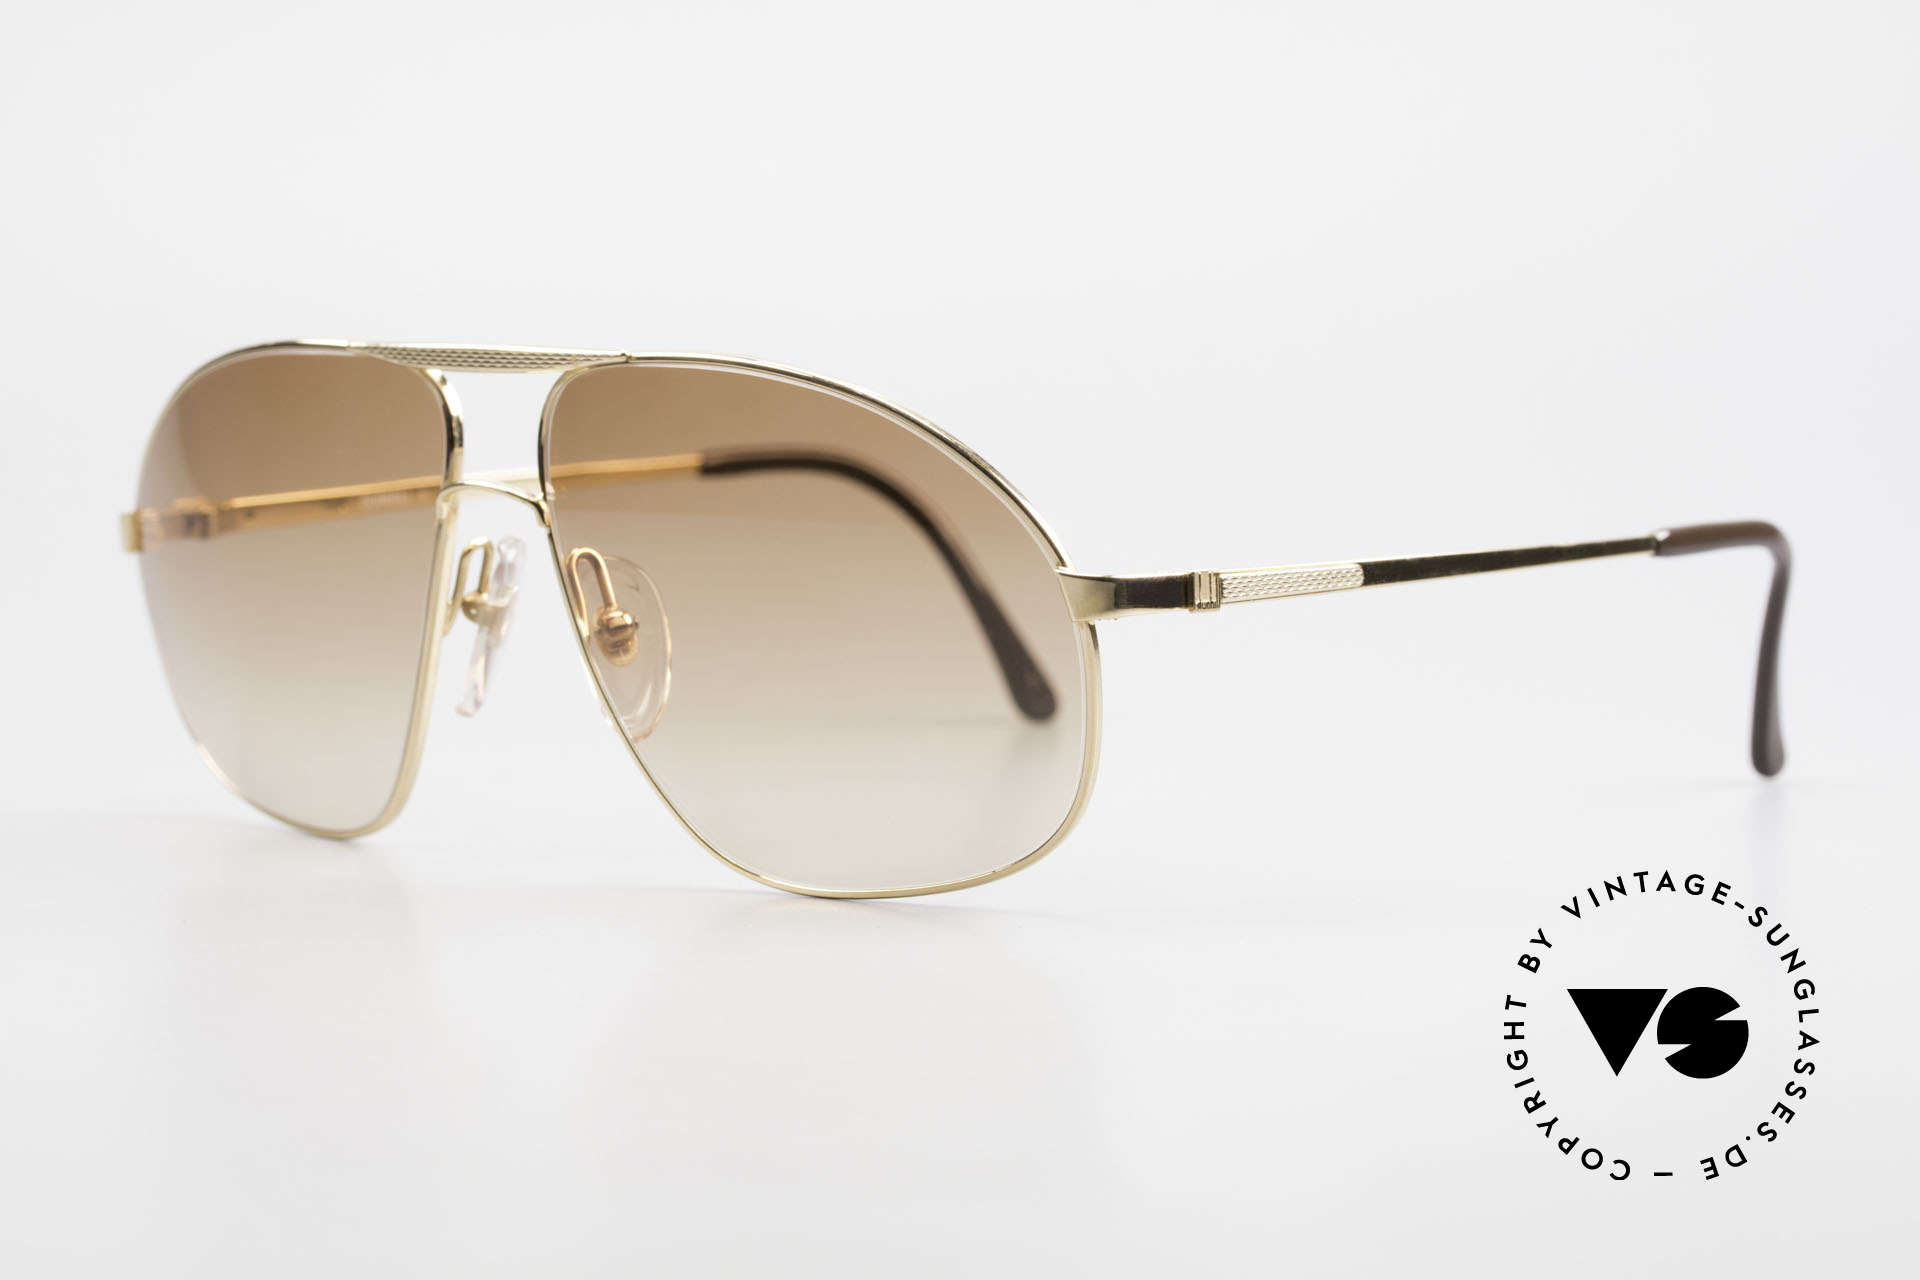 Dunhill 6125 Gold Plated Aviator Frame 90's, hardgold-plated and BARLEY: hundreds of minute facets, Made for Men